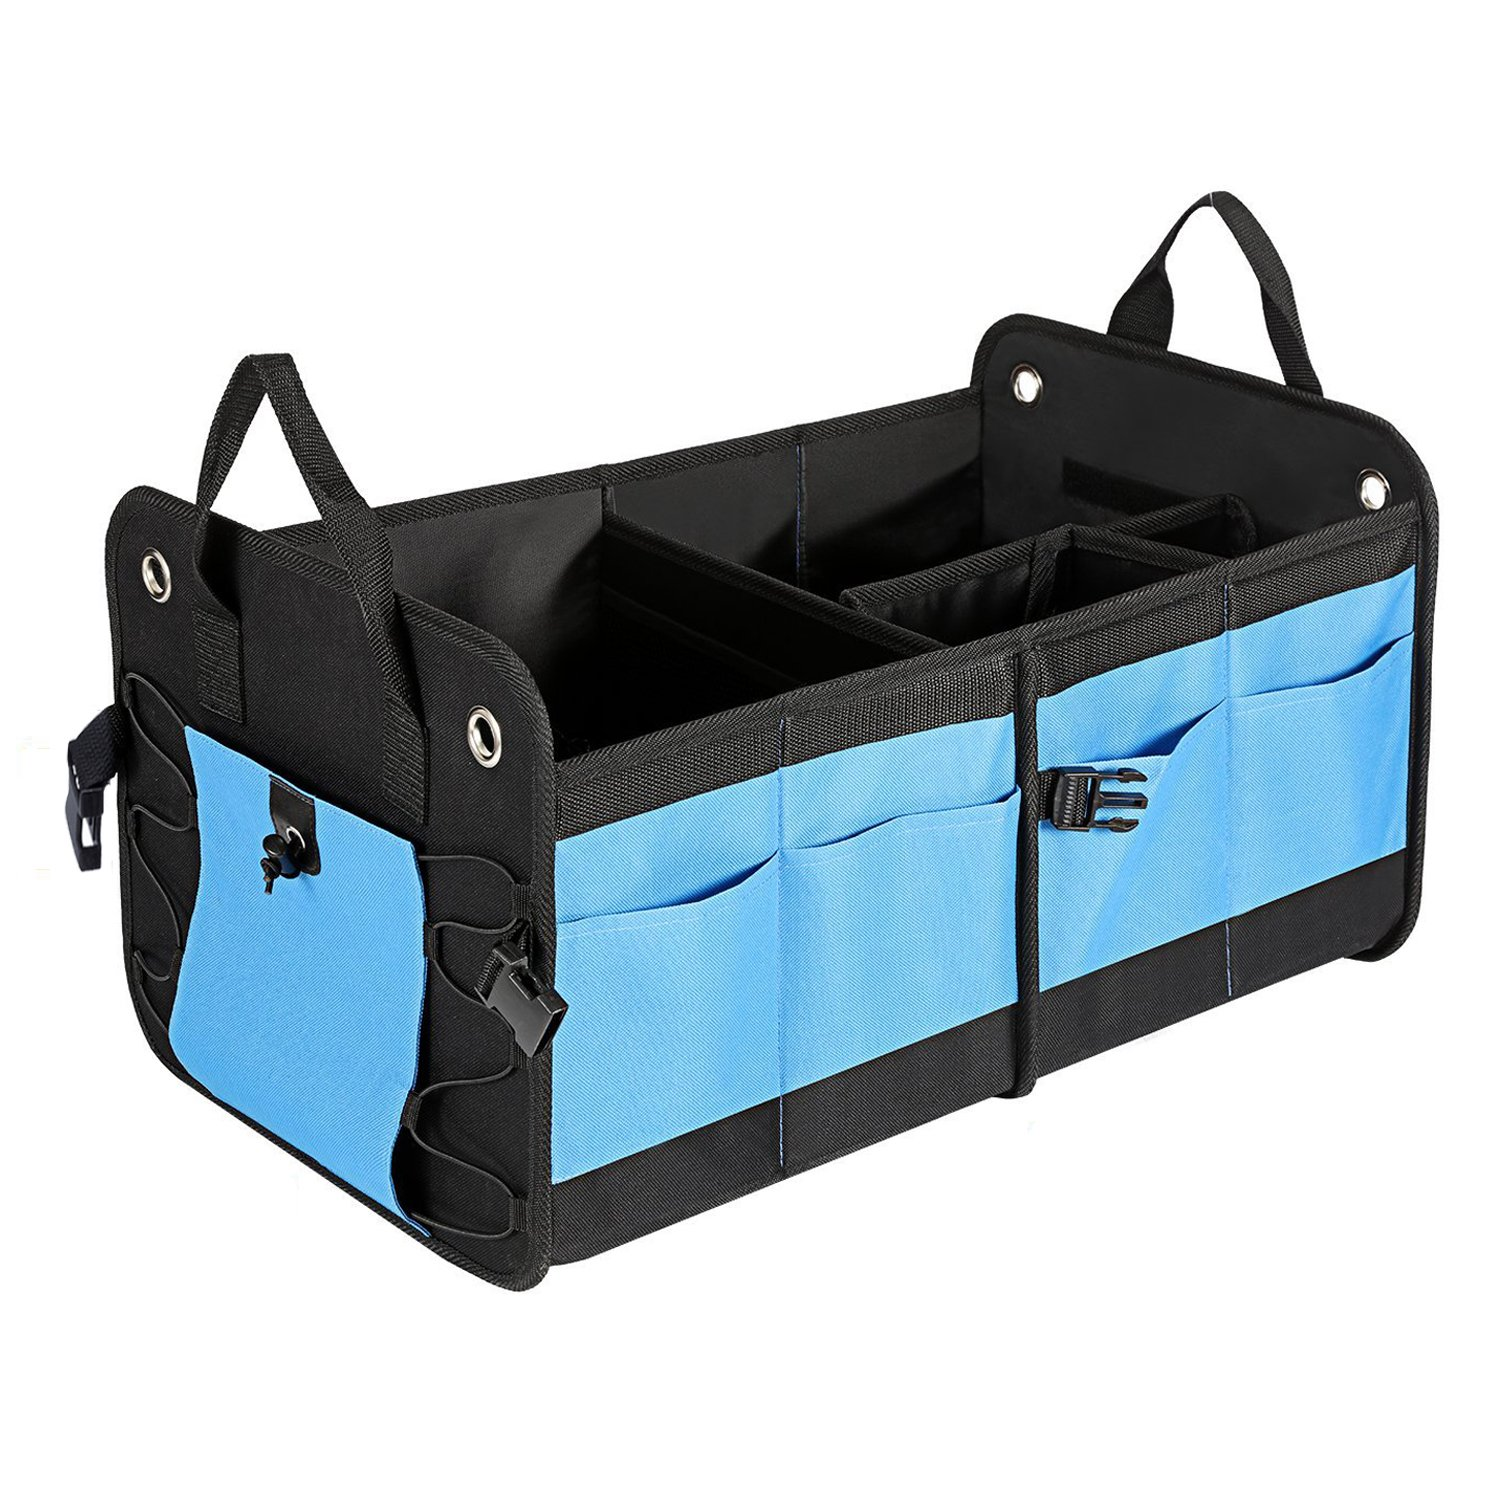 MaidMAX Trunk Organizer for SUV, Anti-Slip Straps, Adjustable Compartments and Side Pockets, Foldable, Black and Blue 903047